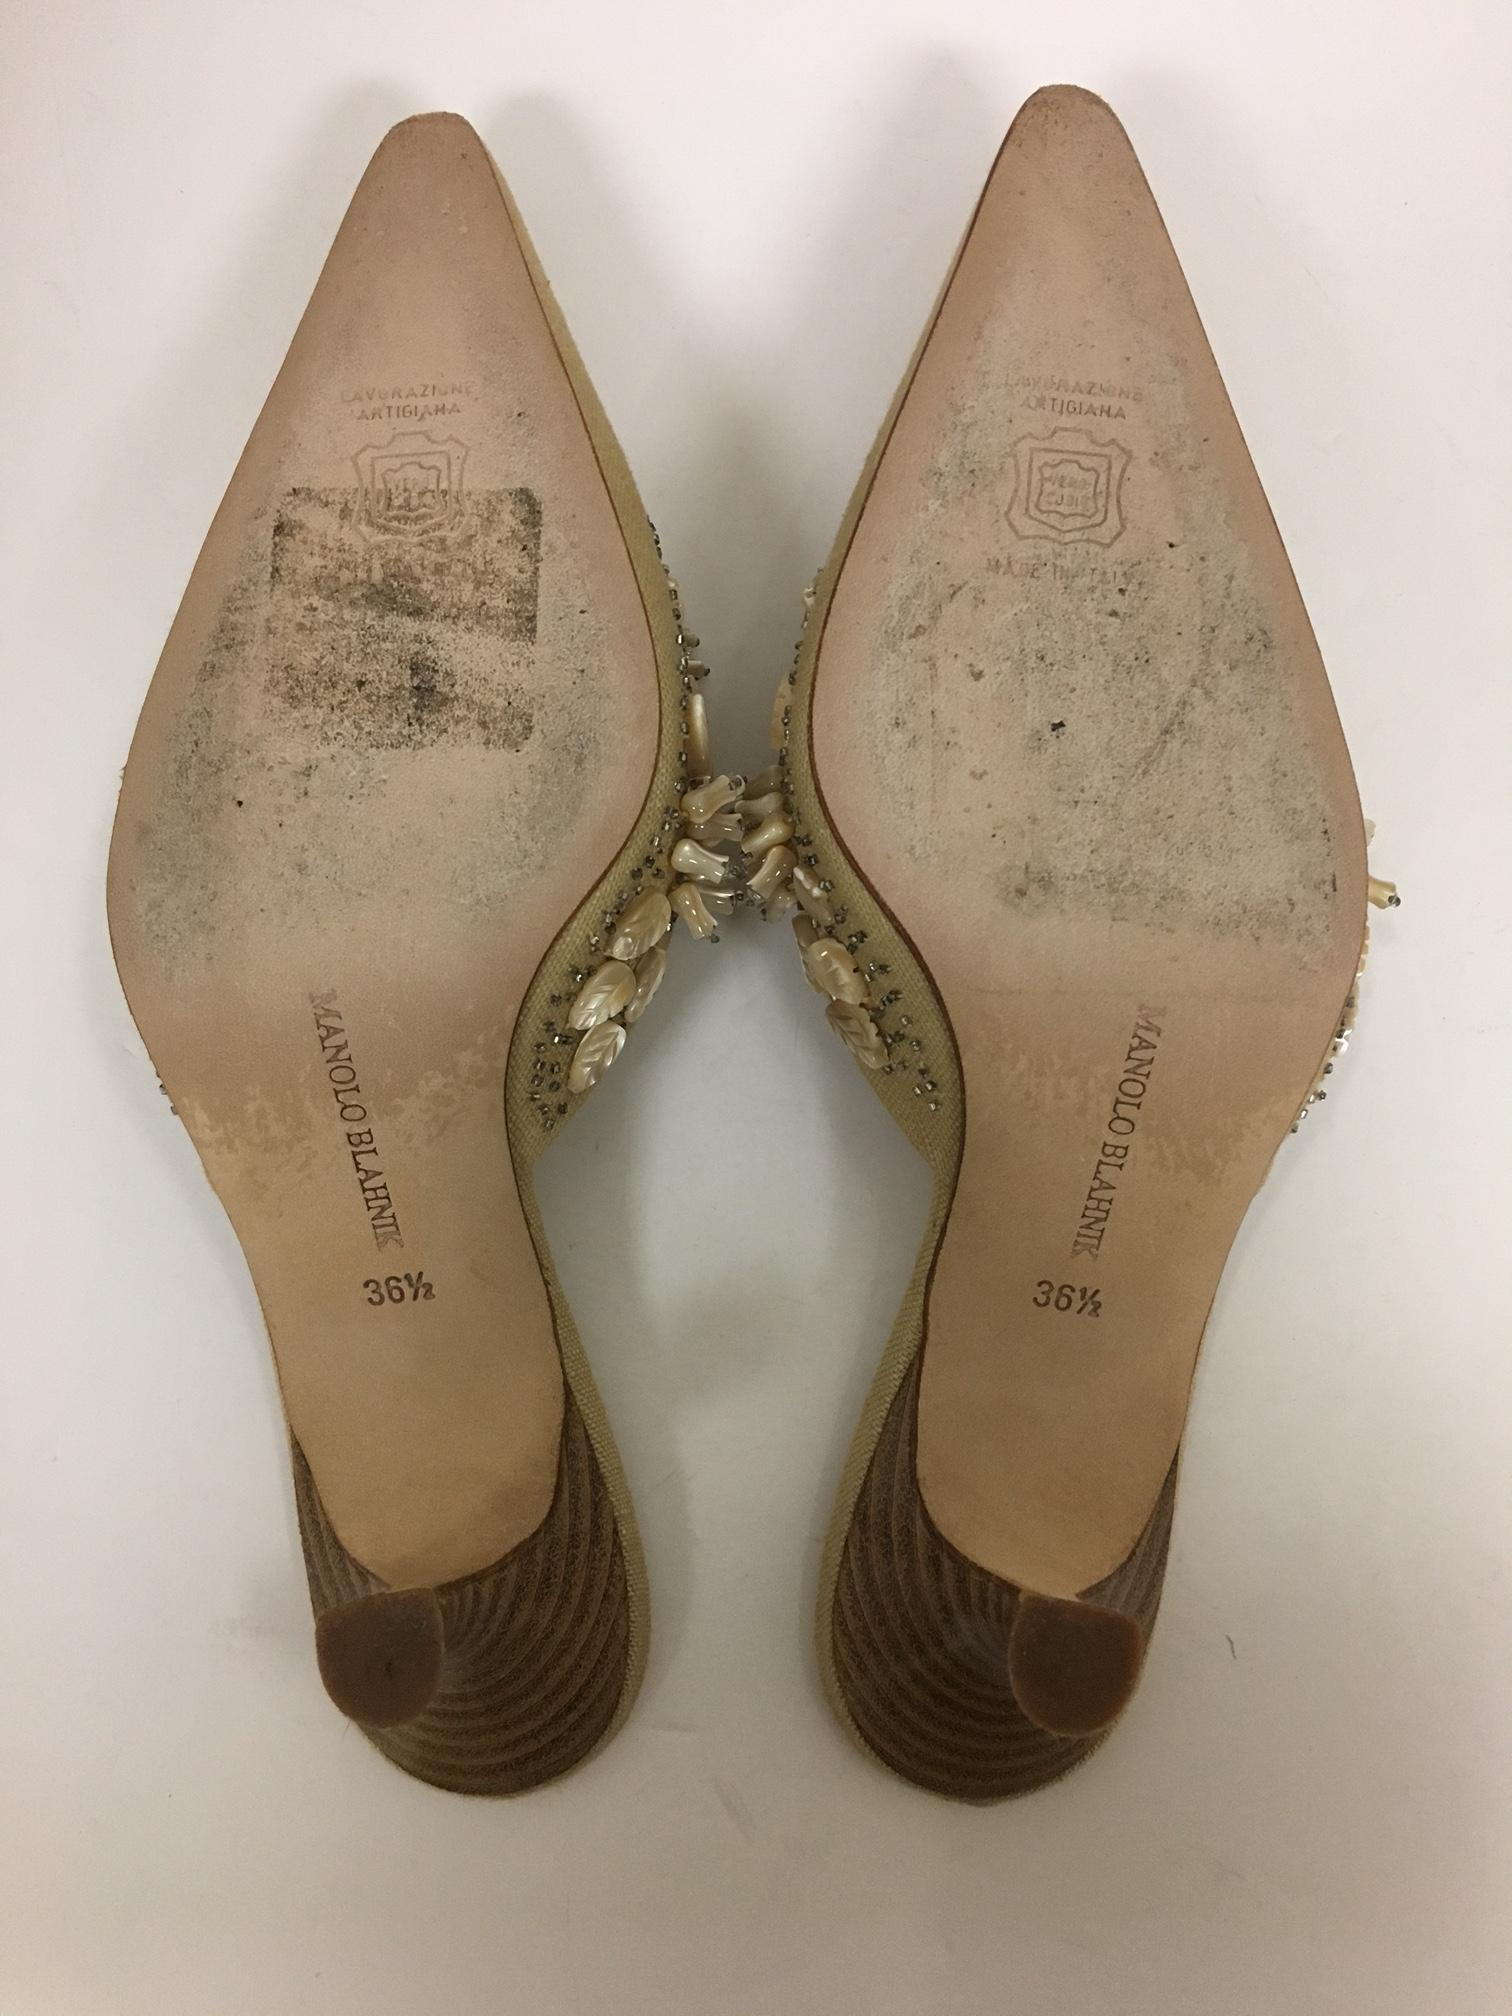 Pay Shell Credit Card >> Manolo Blahnik Pointy-toe Kitten Heel With Shell Beading Tan Mules | Mules & Clogs on Sale